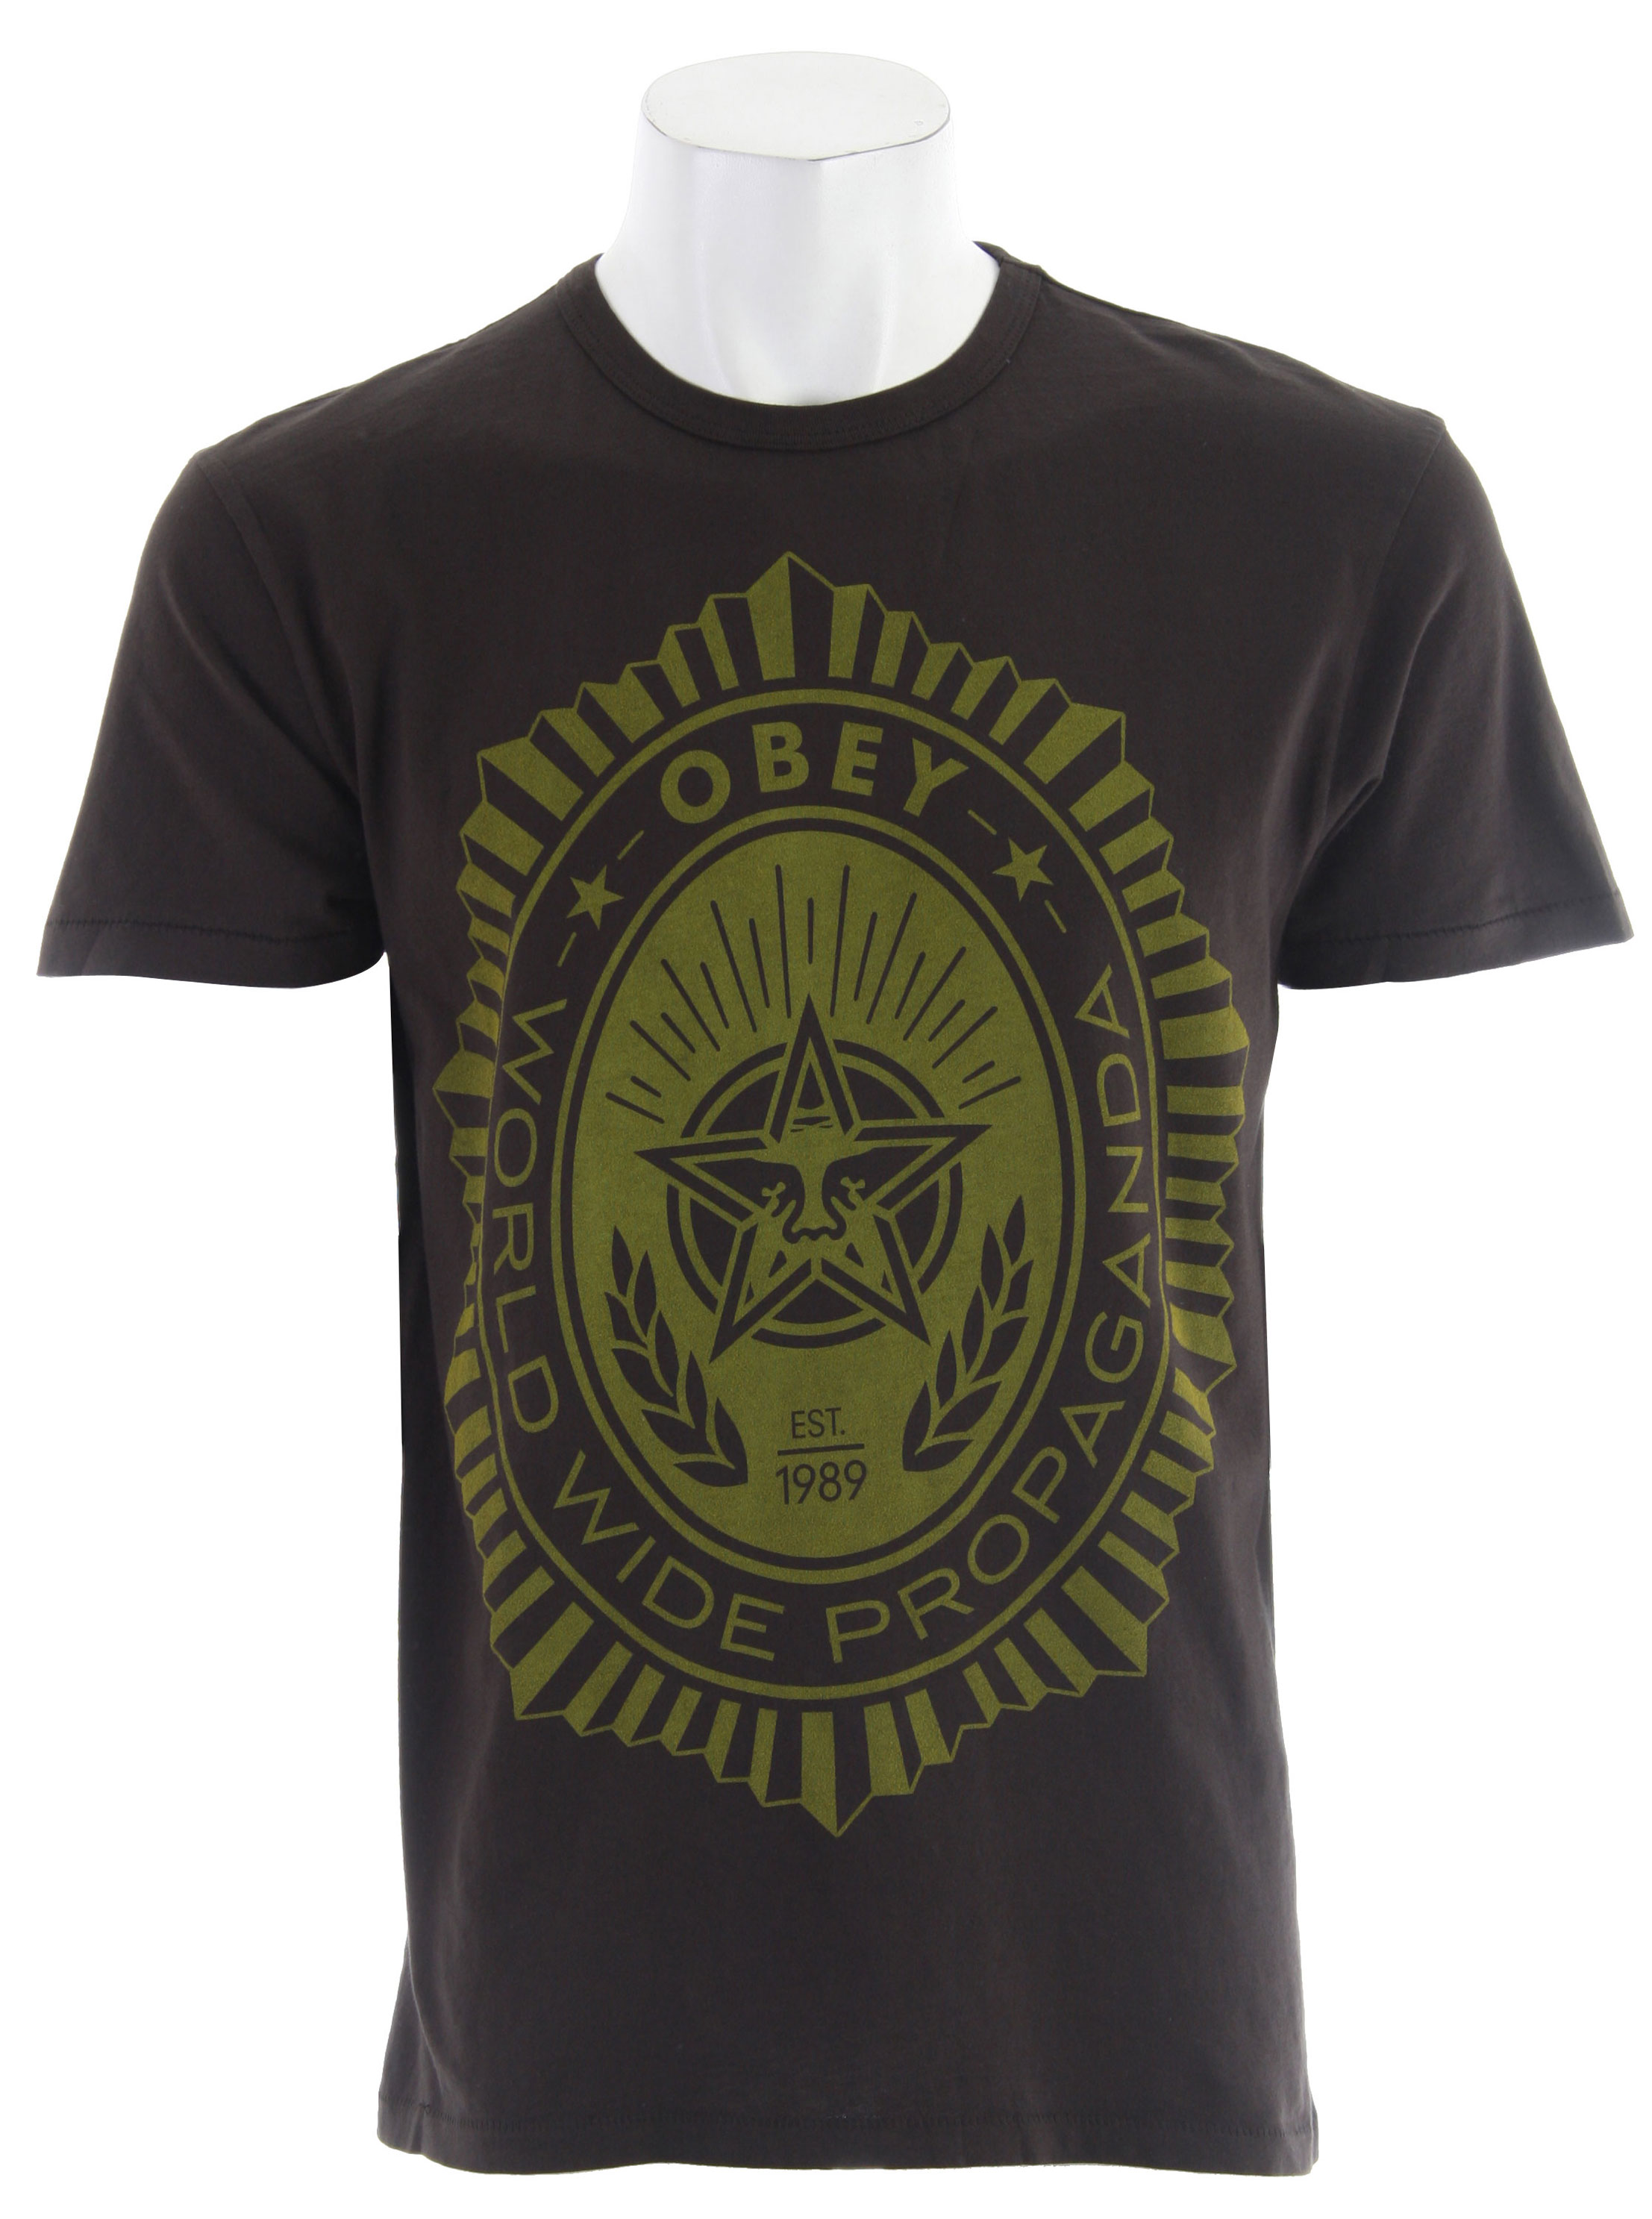 Key Features of The Obey Legion T-Shirt: Regular Fit Crew Neck Short Sleeve - $24.95